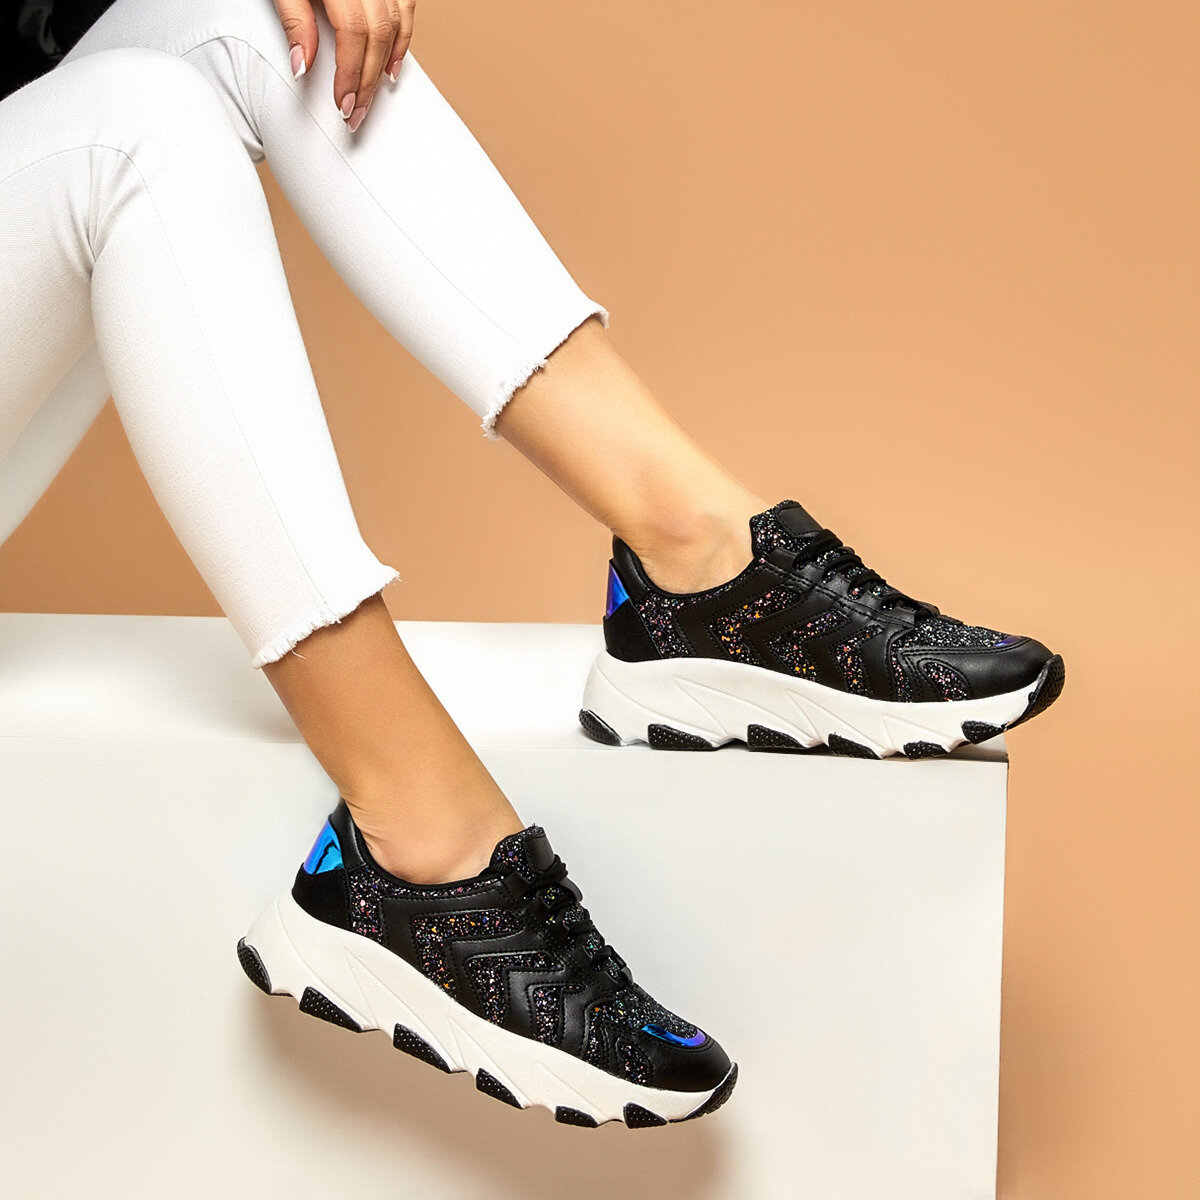 FLO POİSE Black Women 'S Sneaker Shoes BUTIGO